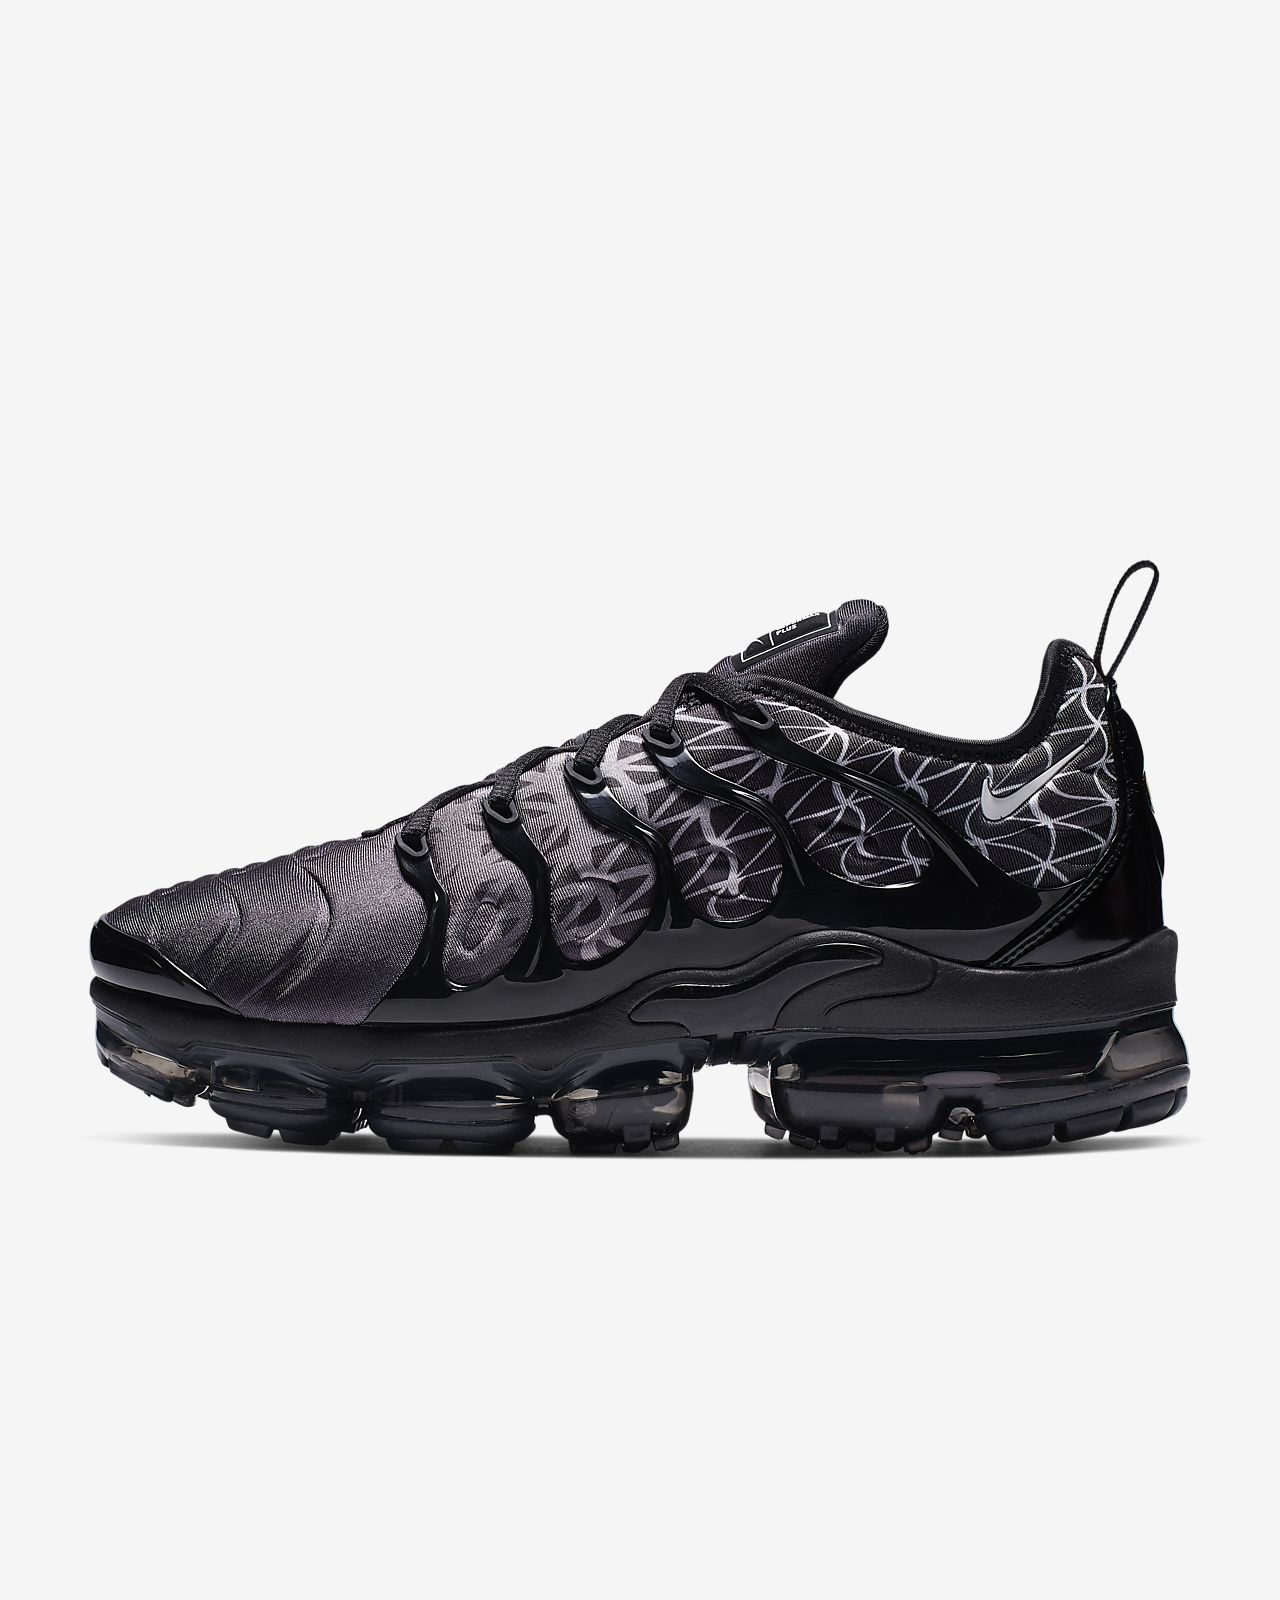 sneakers for cheap f3a17 0fe57 ... Chaussure Nike Air VaporMax Plus pour Homme